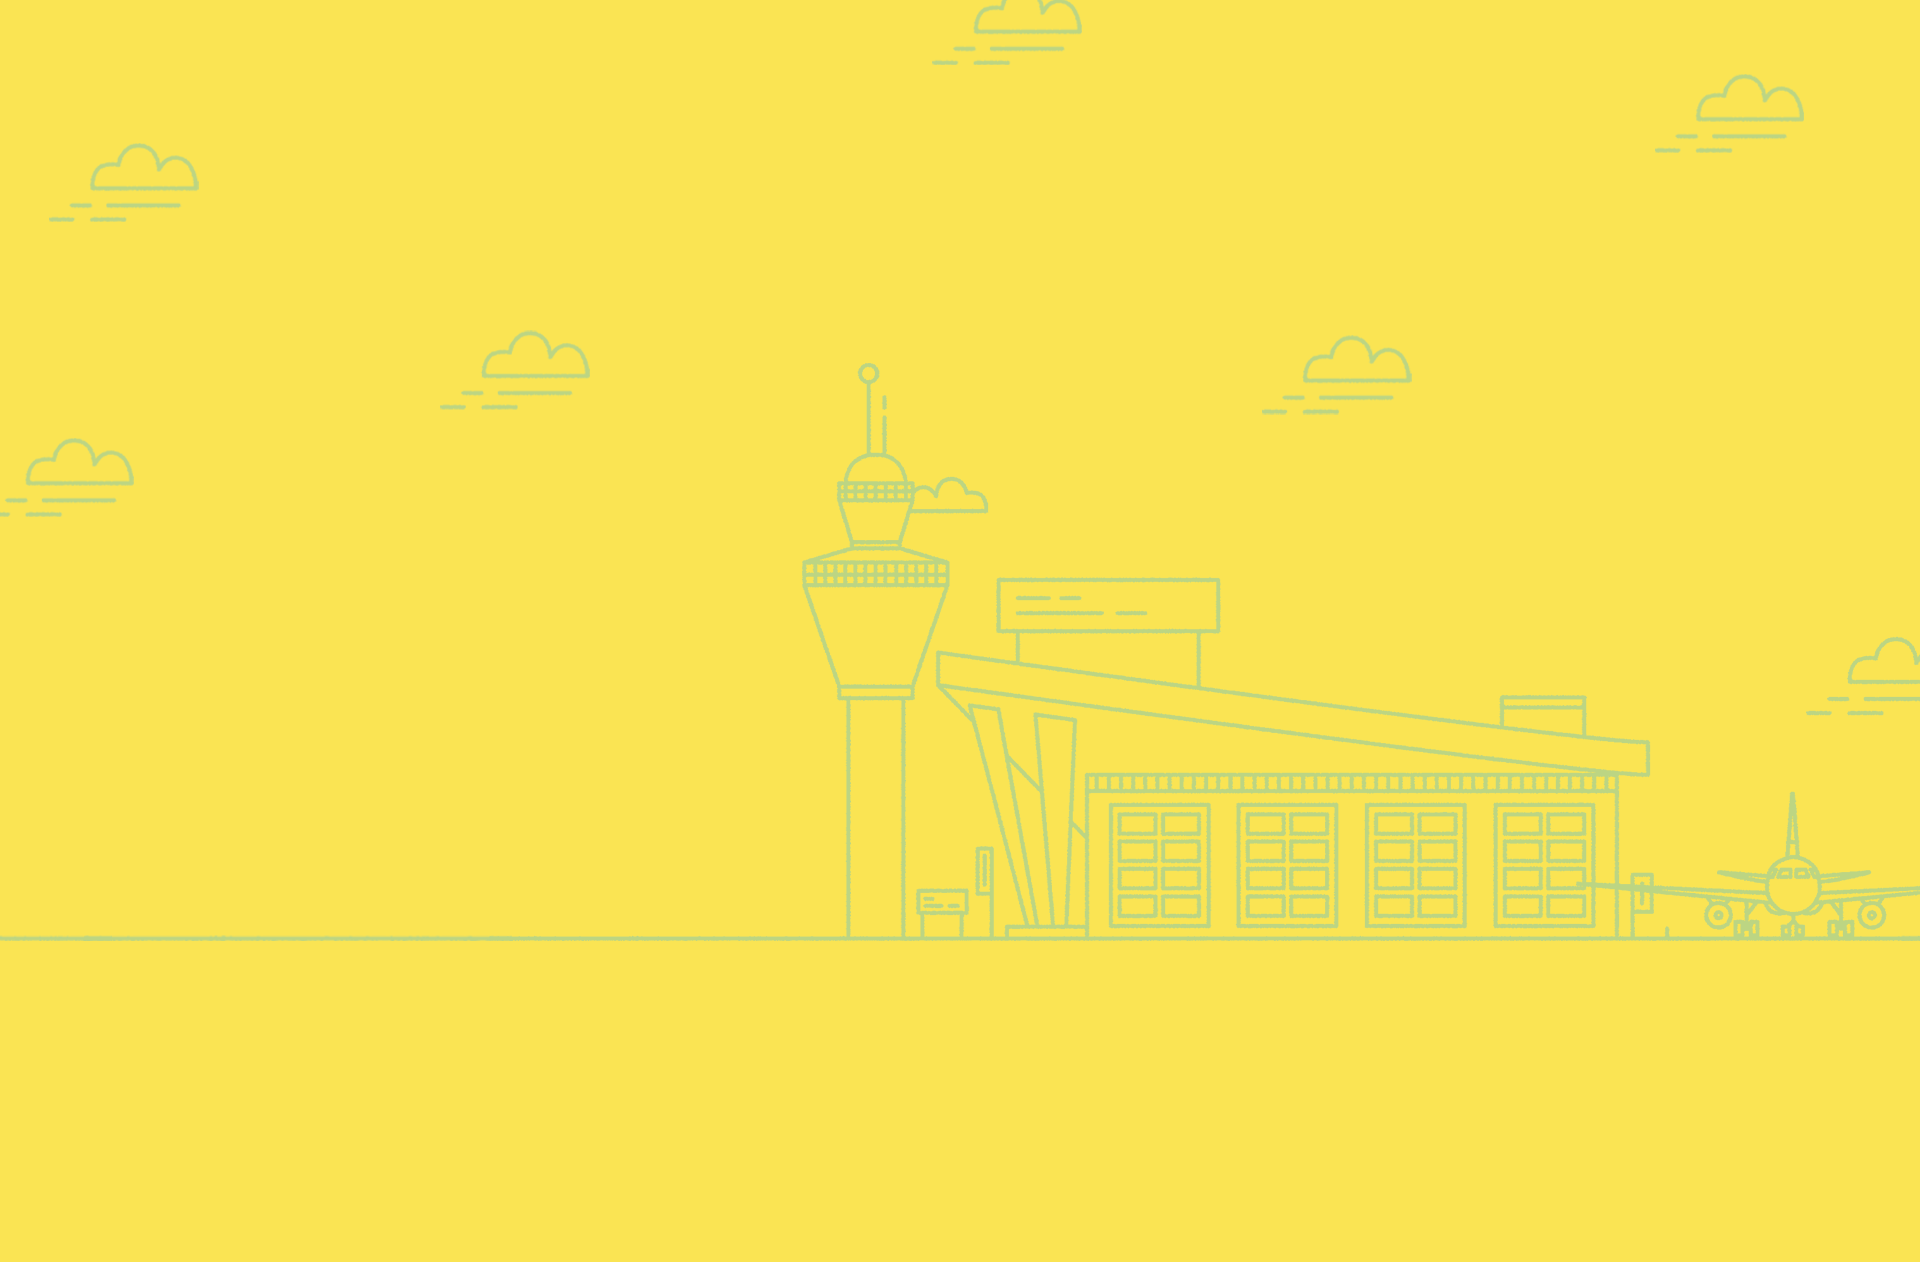 Young-Innovators-Background-Airport3-Yellow-Childcare